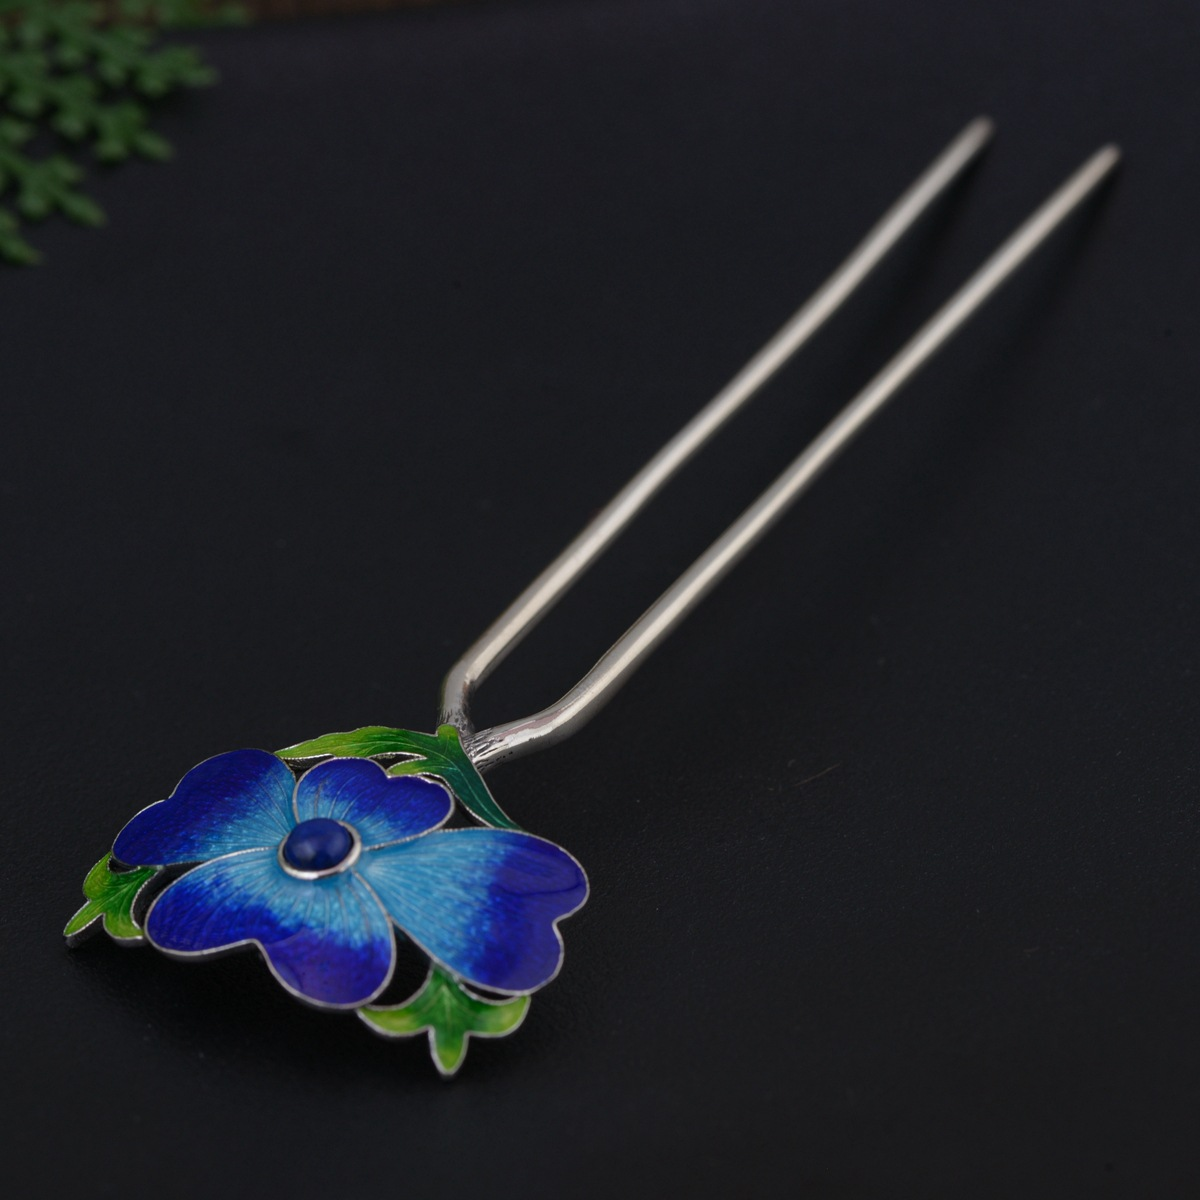 Cloisonne Thai Silver Hair Stick Enamel Silver Chinese Hairpin 2 prong Peony Flower Hair Fork Jewelry